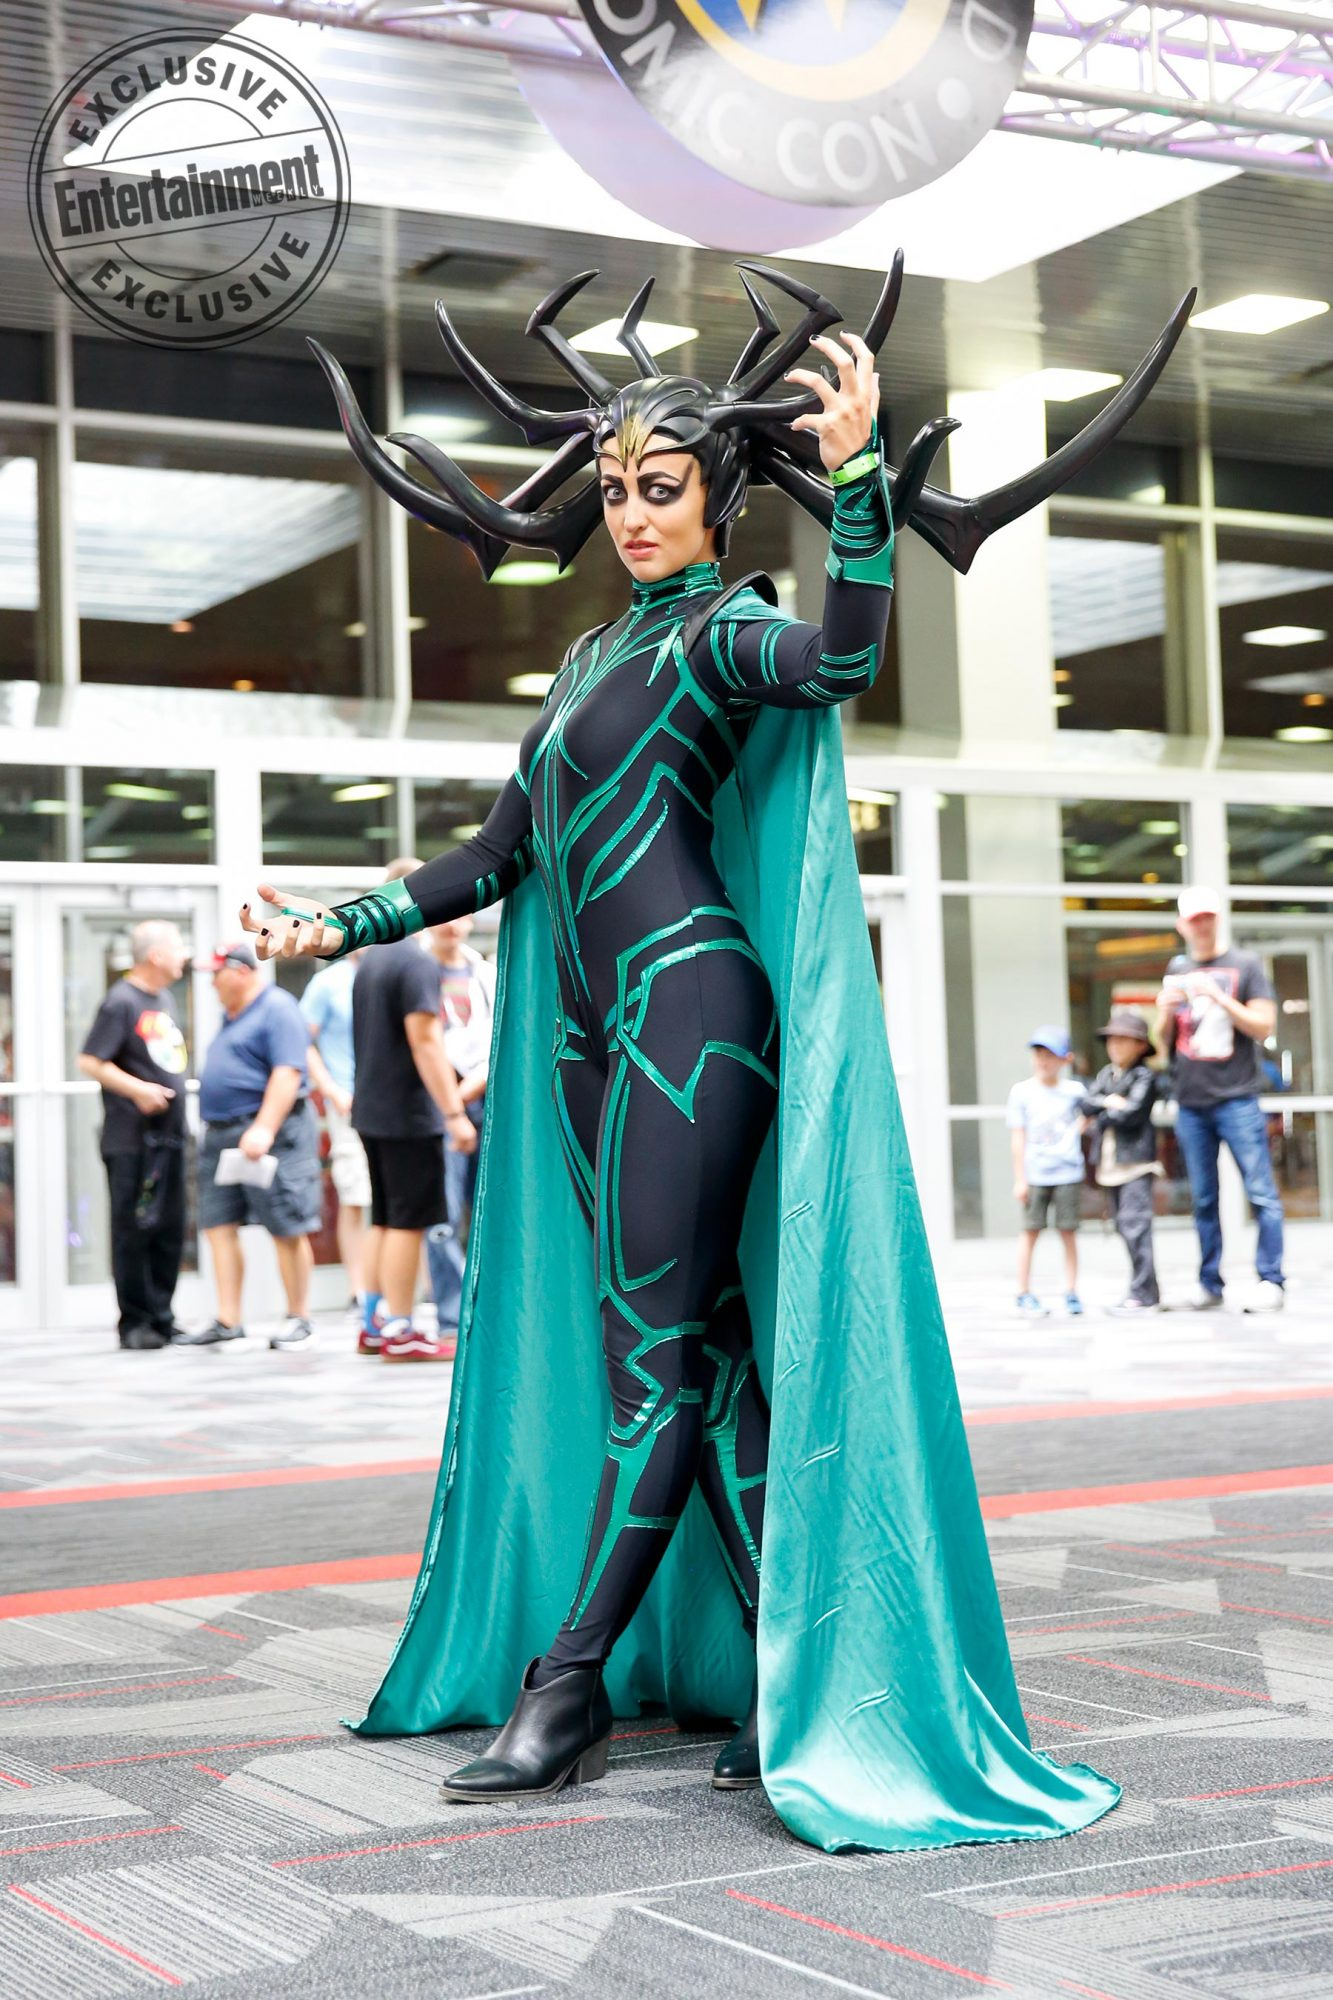 Chicago Comic-Con 2018Photographed by Chris Cosgrove for Entertainment Weekly